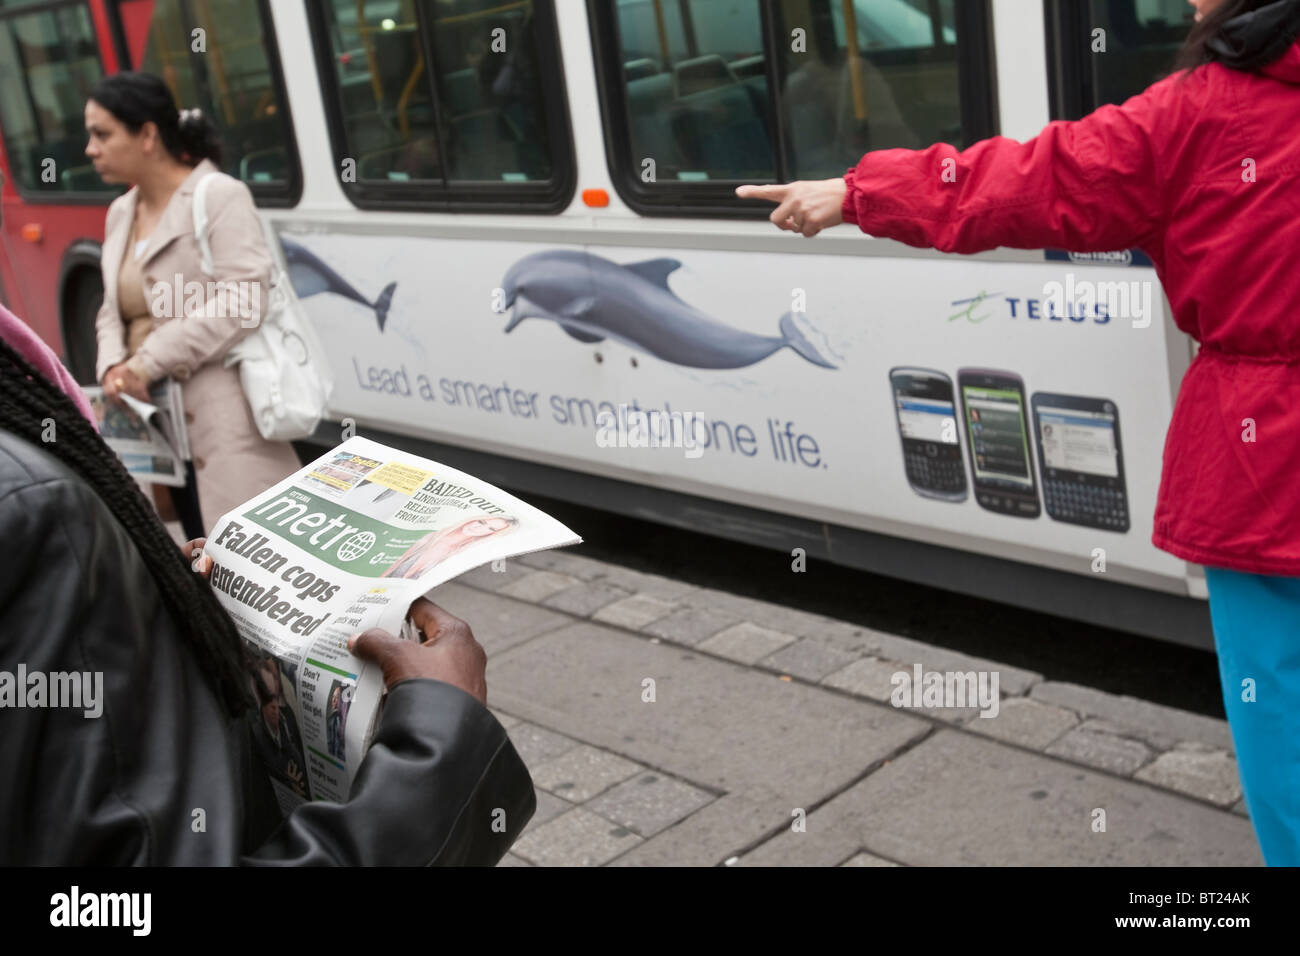 A woman reads a Metro free daily newspaper as she waits for a bus in Ottawa Monday September 27, 2010 Stock Photo